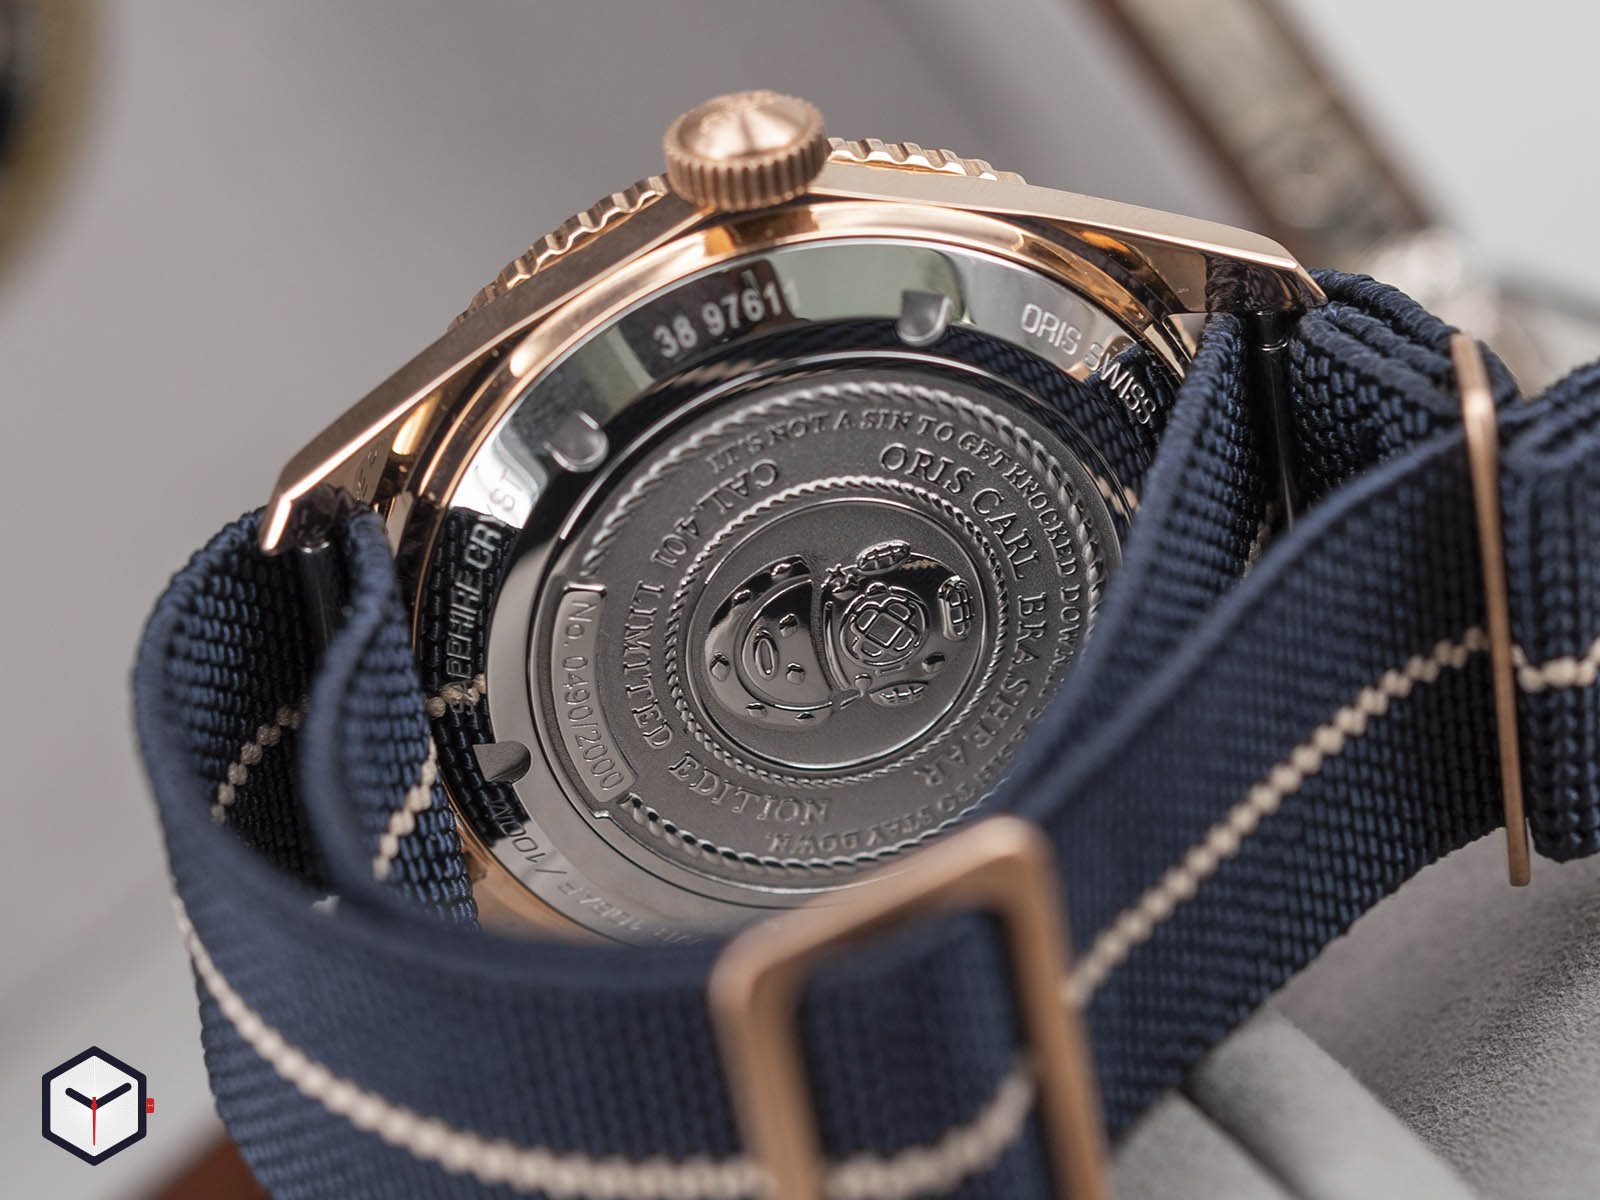 01-401-7764-3185-oris-carl-brashear-calibre-401-limited-edition-6.jpg